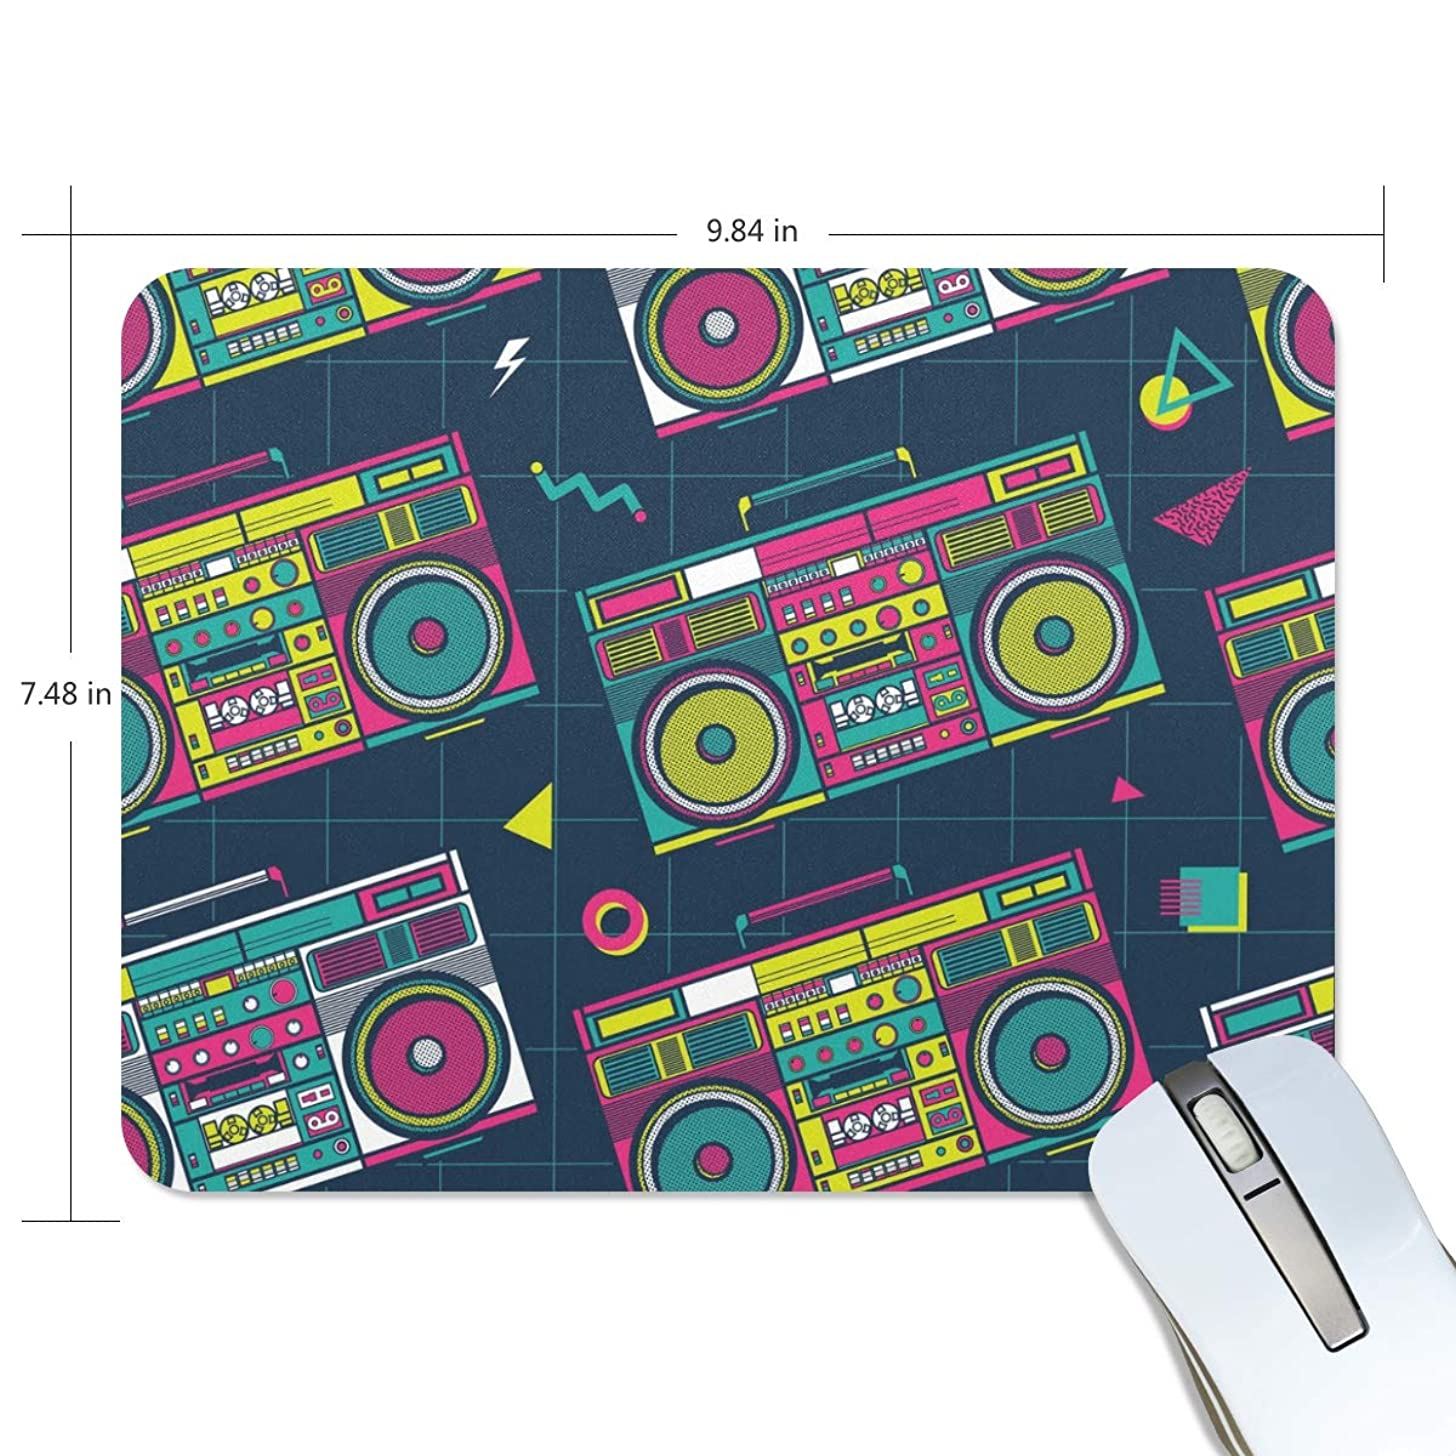 My Daily Retro Pop Boombox Radio 80S Mouse Pad 9.84 x 7.48 x 0.2 inch, Non-Slip Rubber Base Pad for Gaming & Office